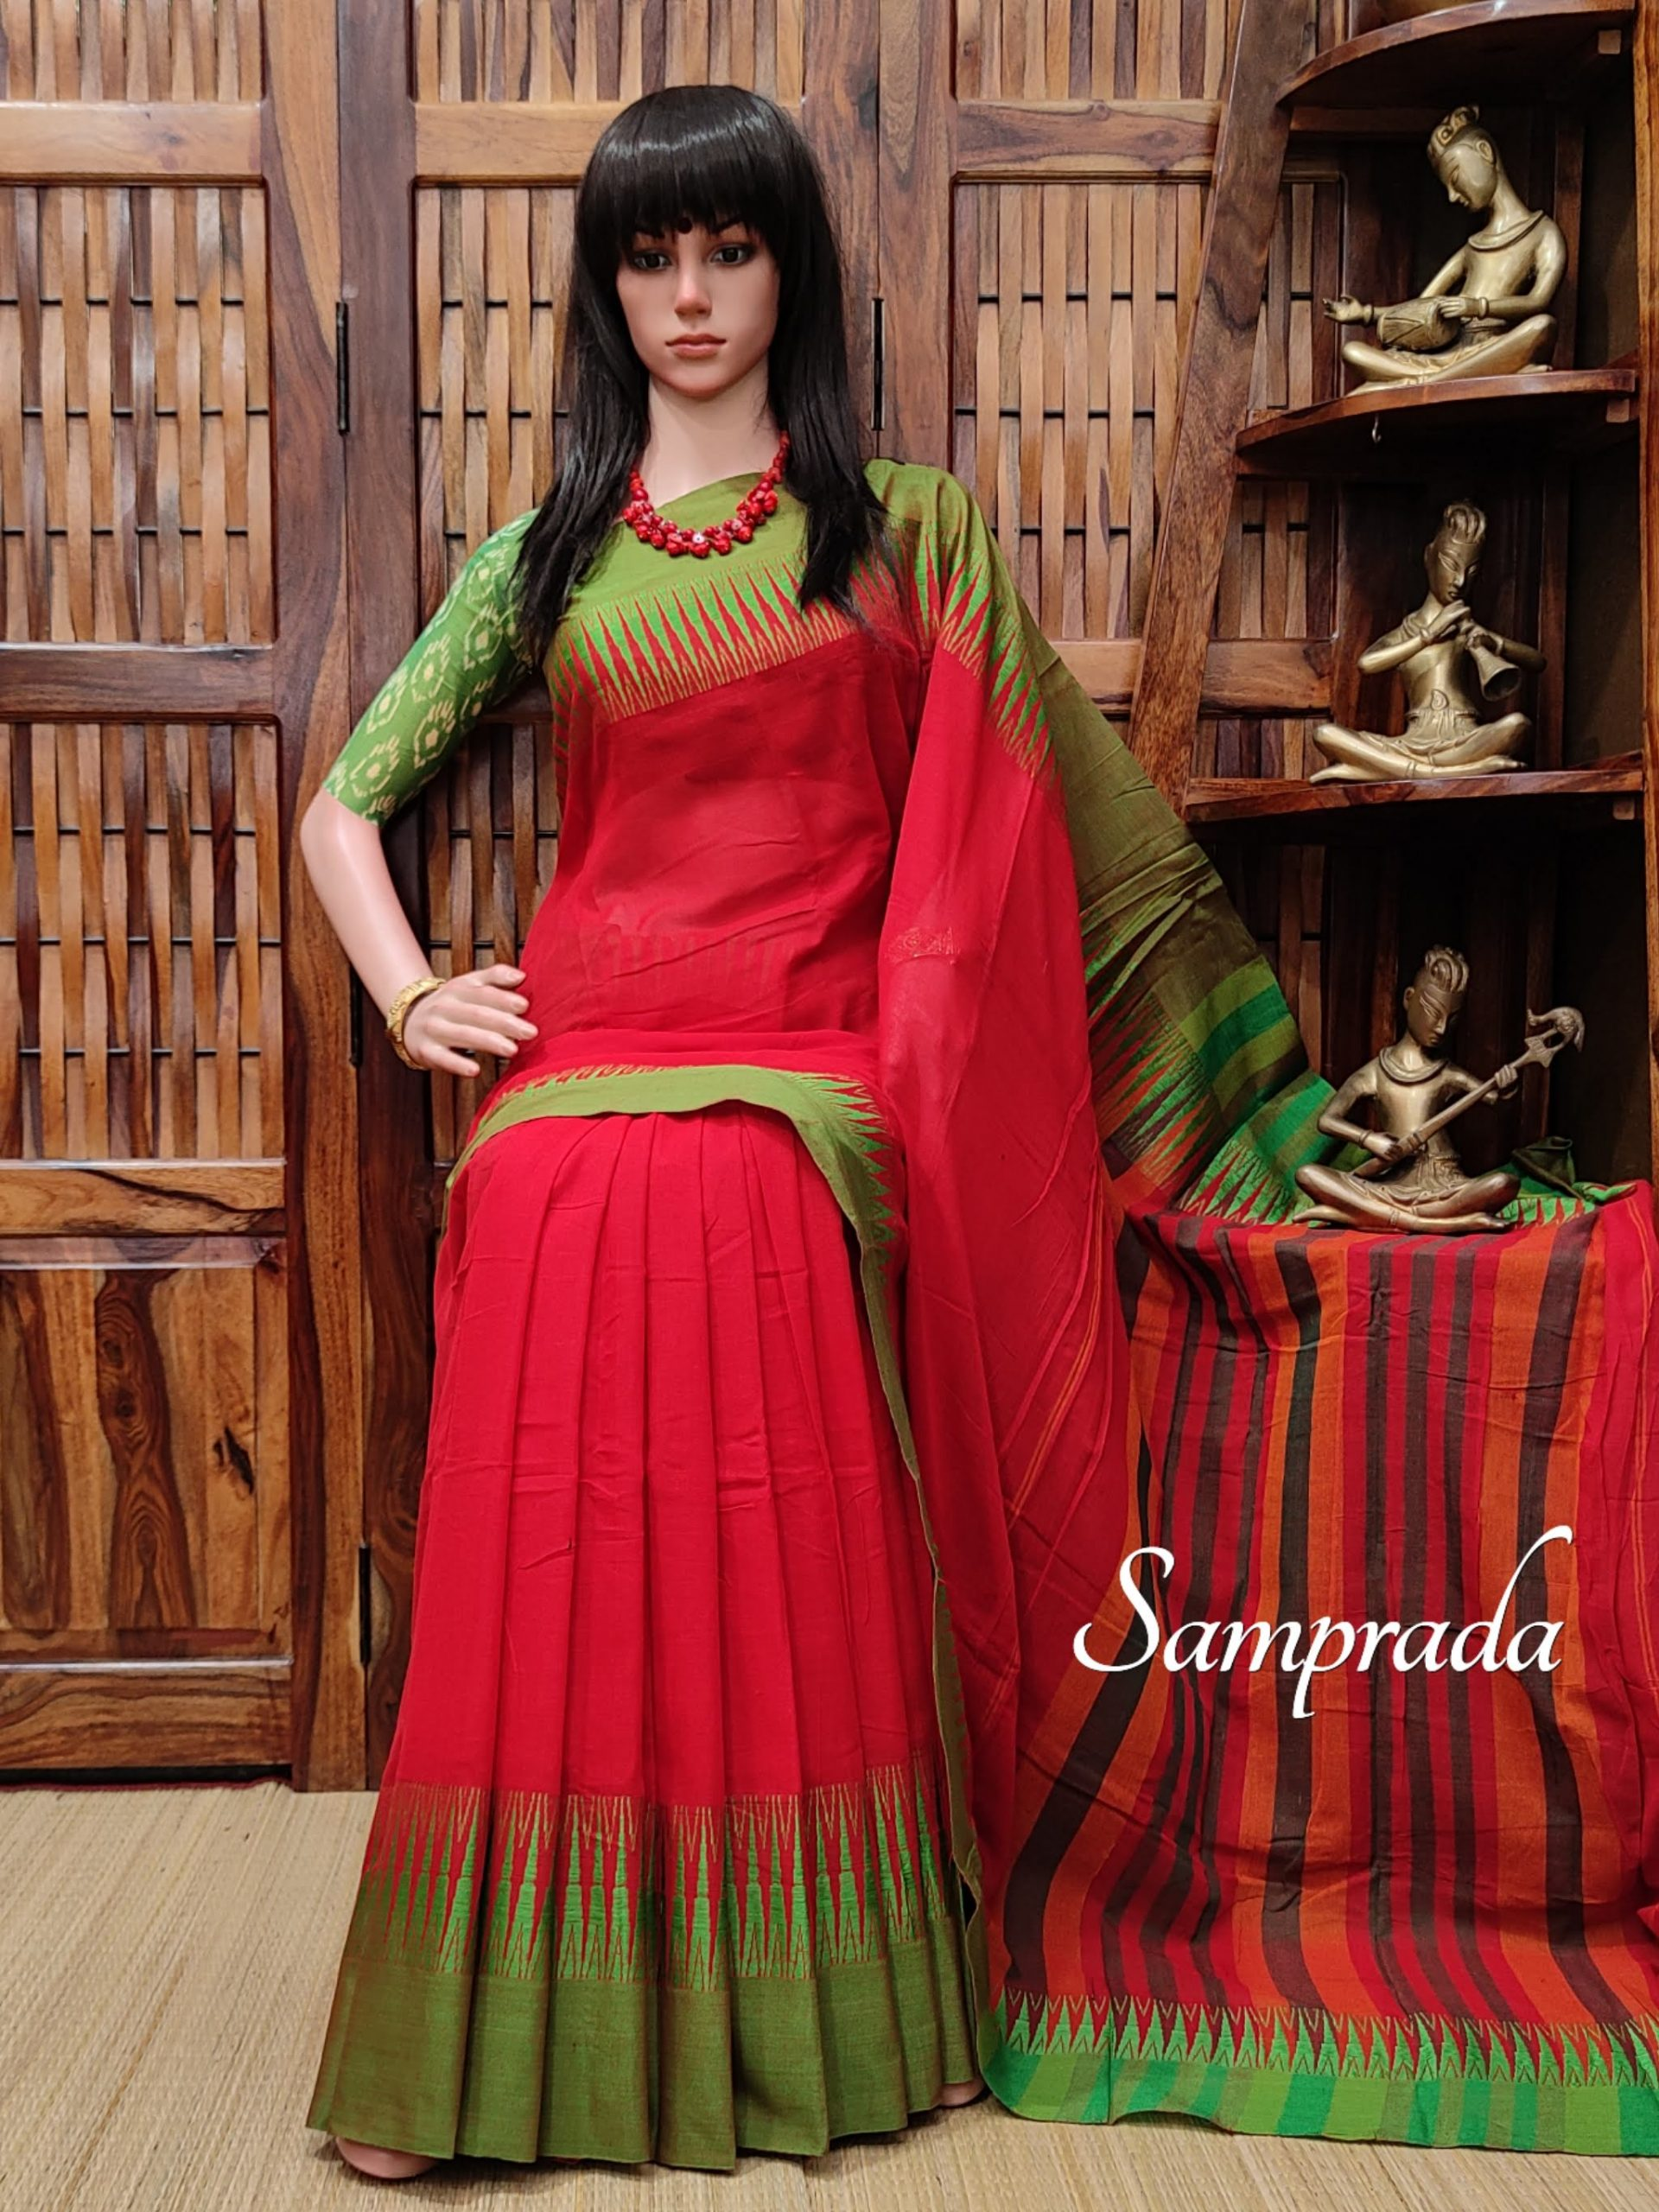 Navamalli - Mercerized Pearl Cotton Saree